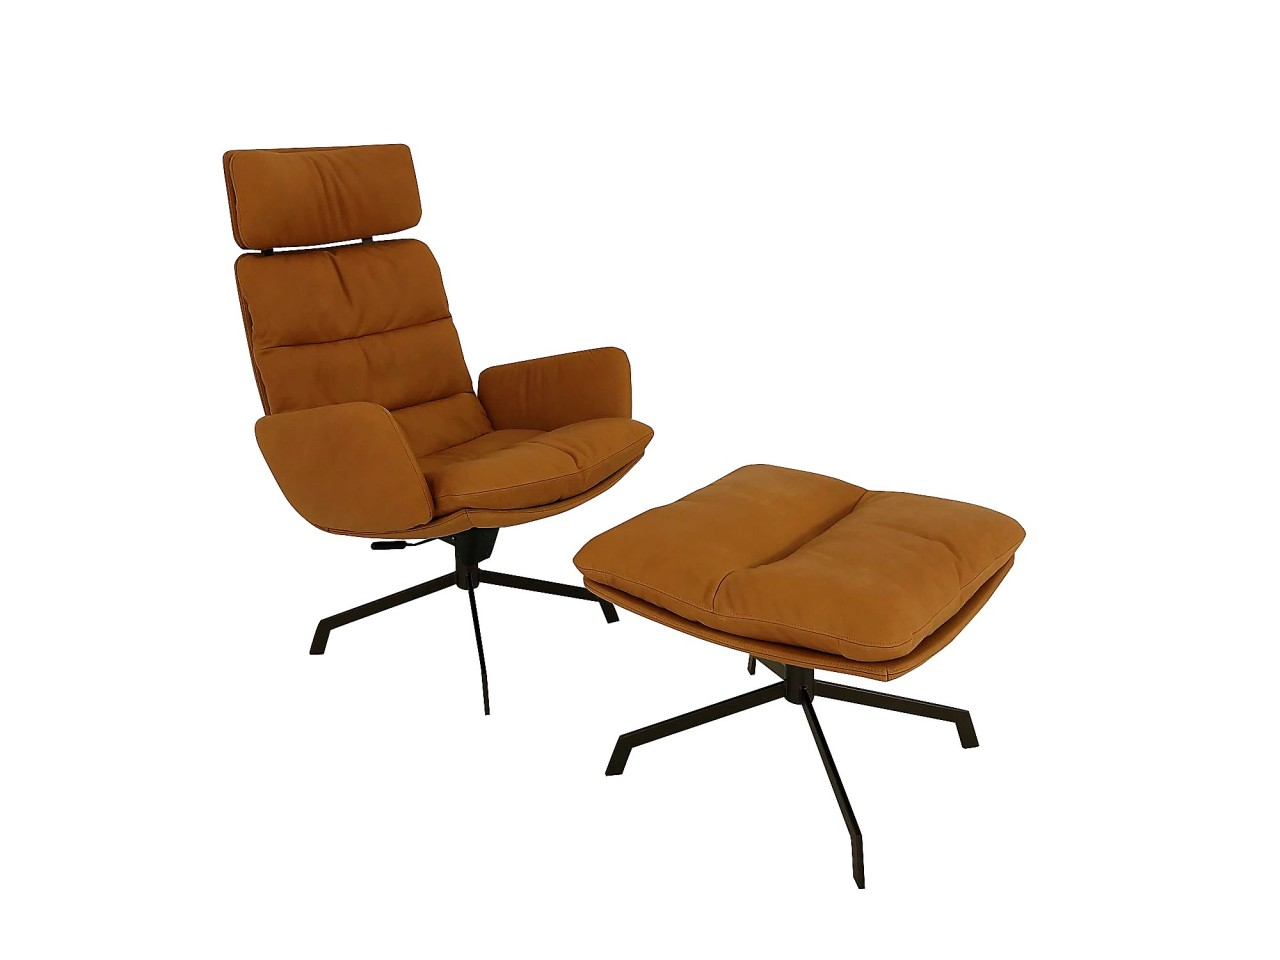 Lounge Sessel Berlin Kff Arva Lounge Sessel In Leder Silk Cognac Mit Wipp Funktion Und Hocker